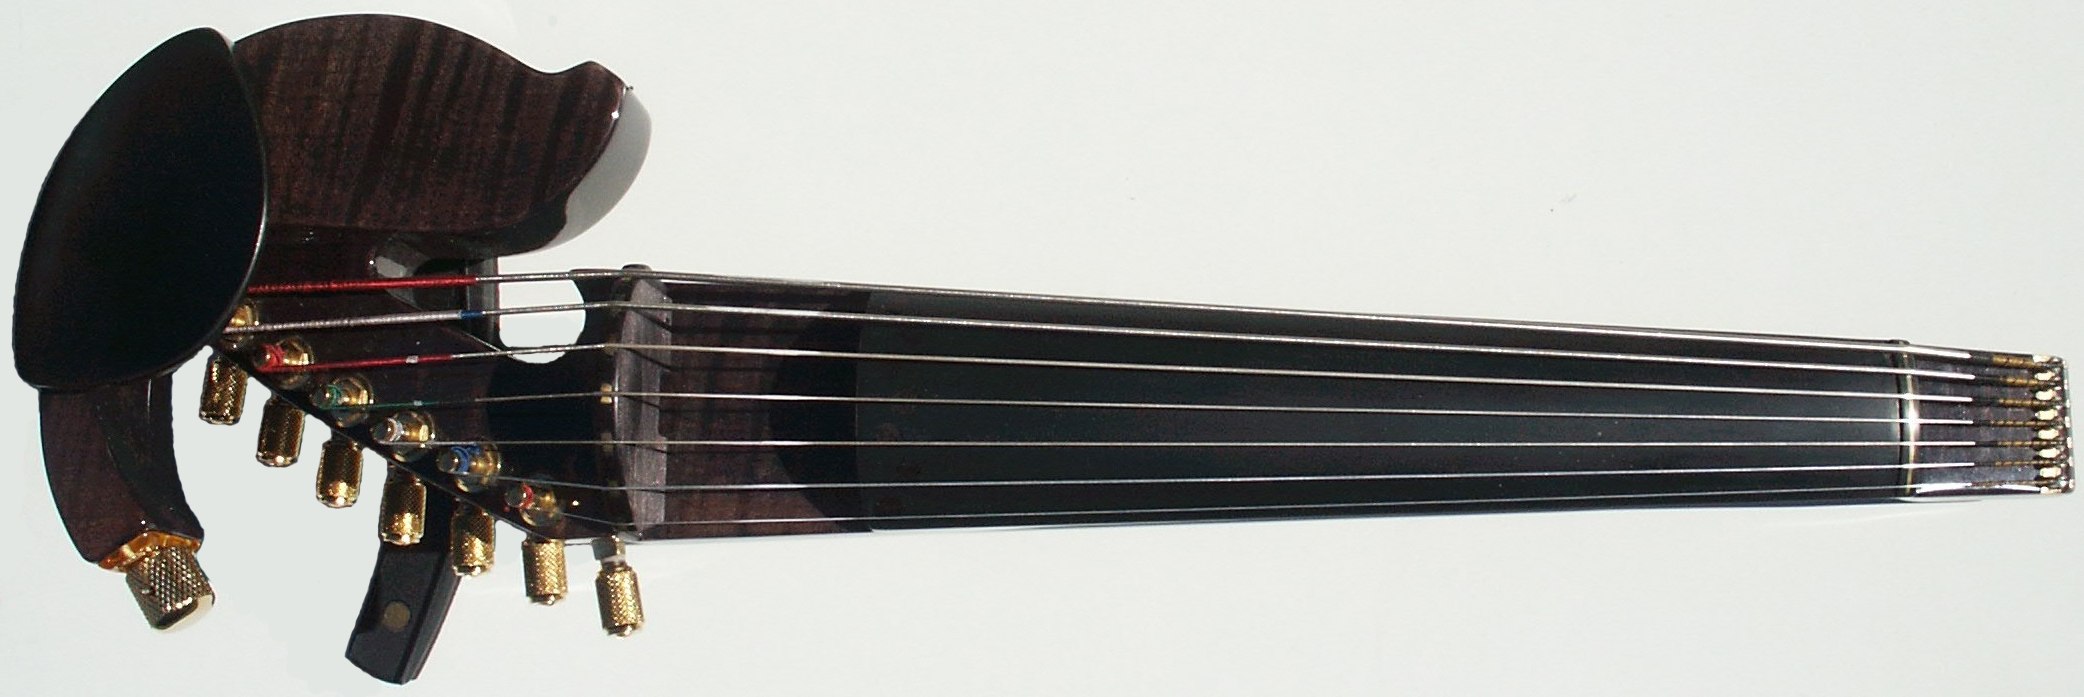 Latham Seven String Front View.JPG